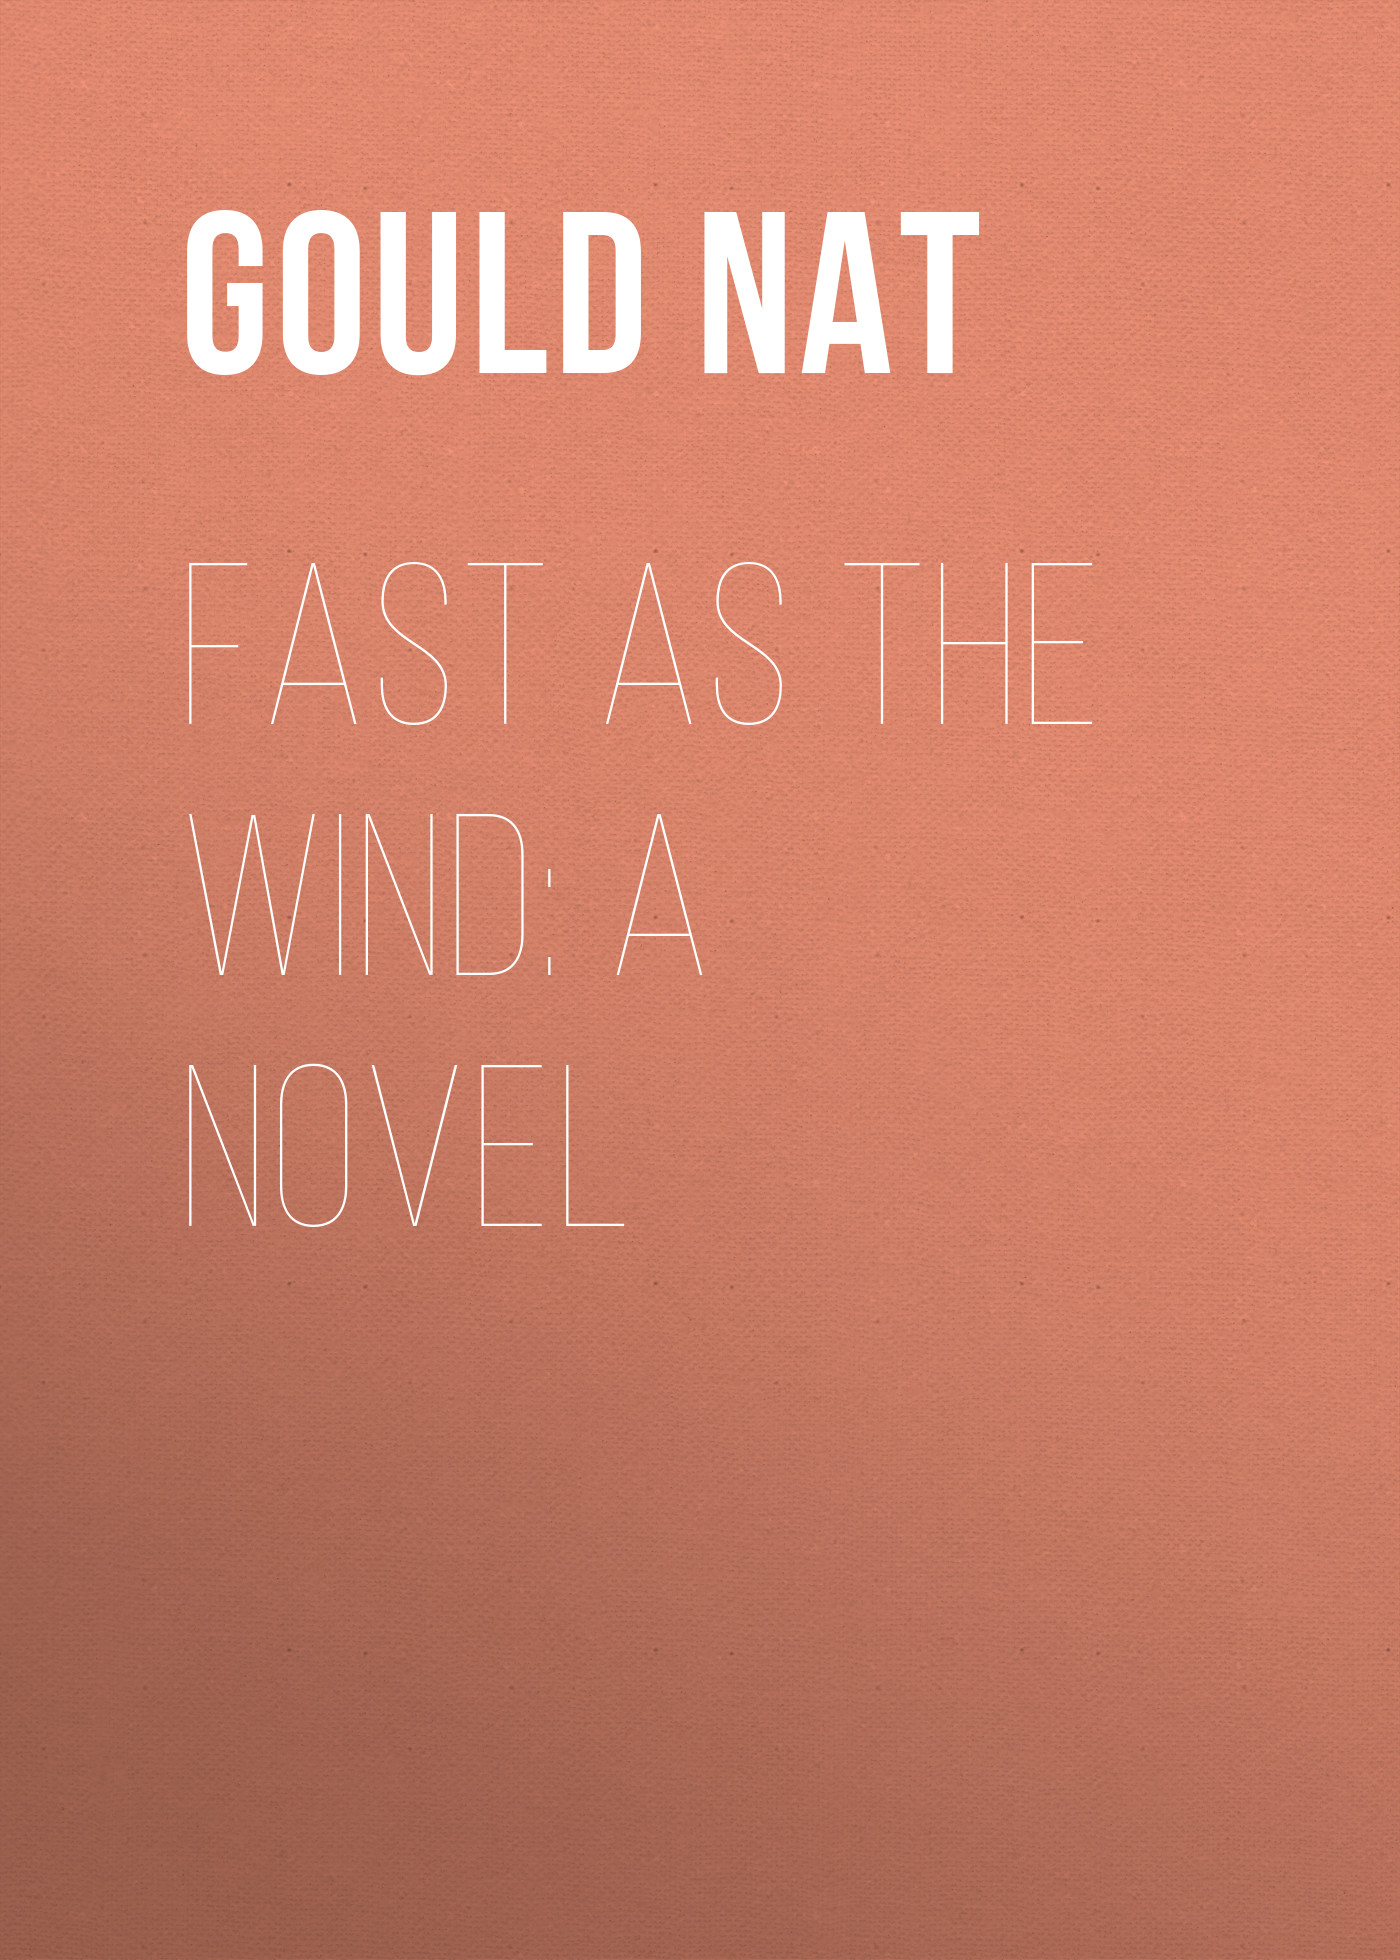 Gould Nat Fast as the Wind: A Novel ароматизатор aroma wind 002 a